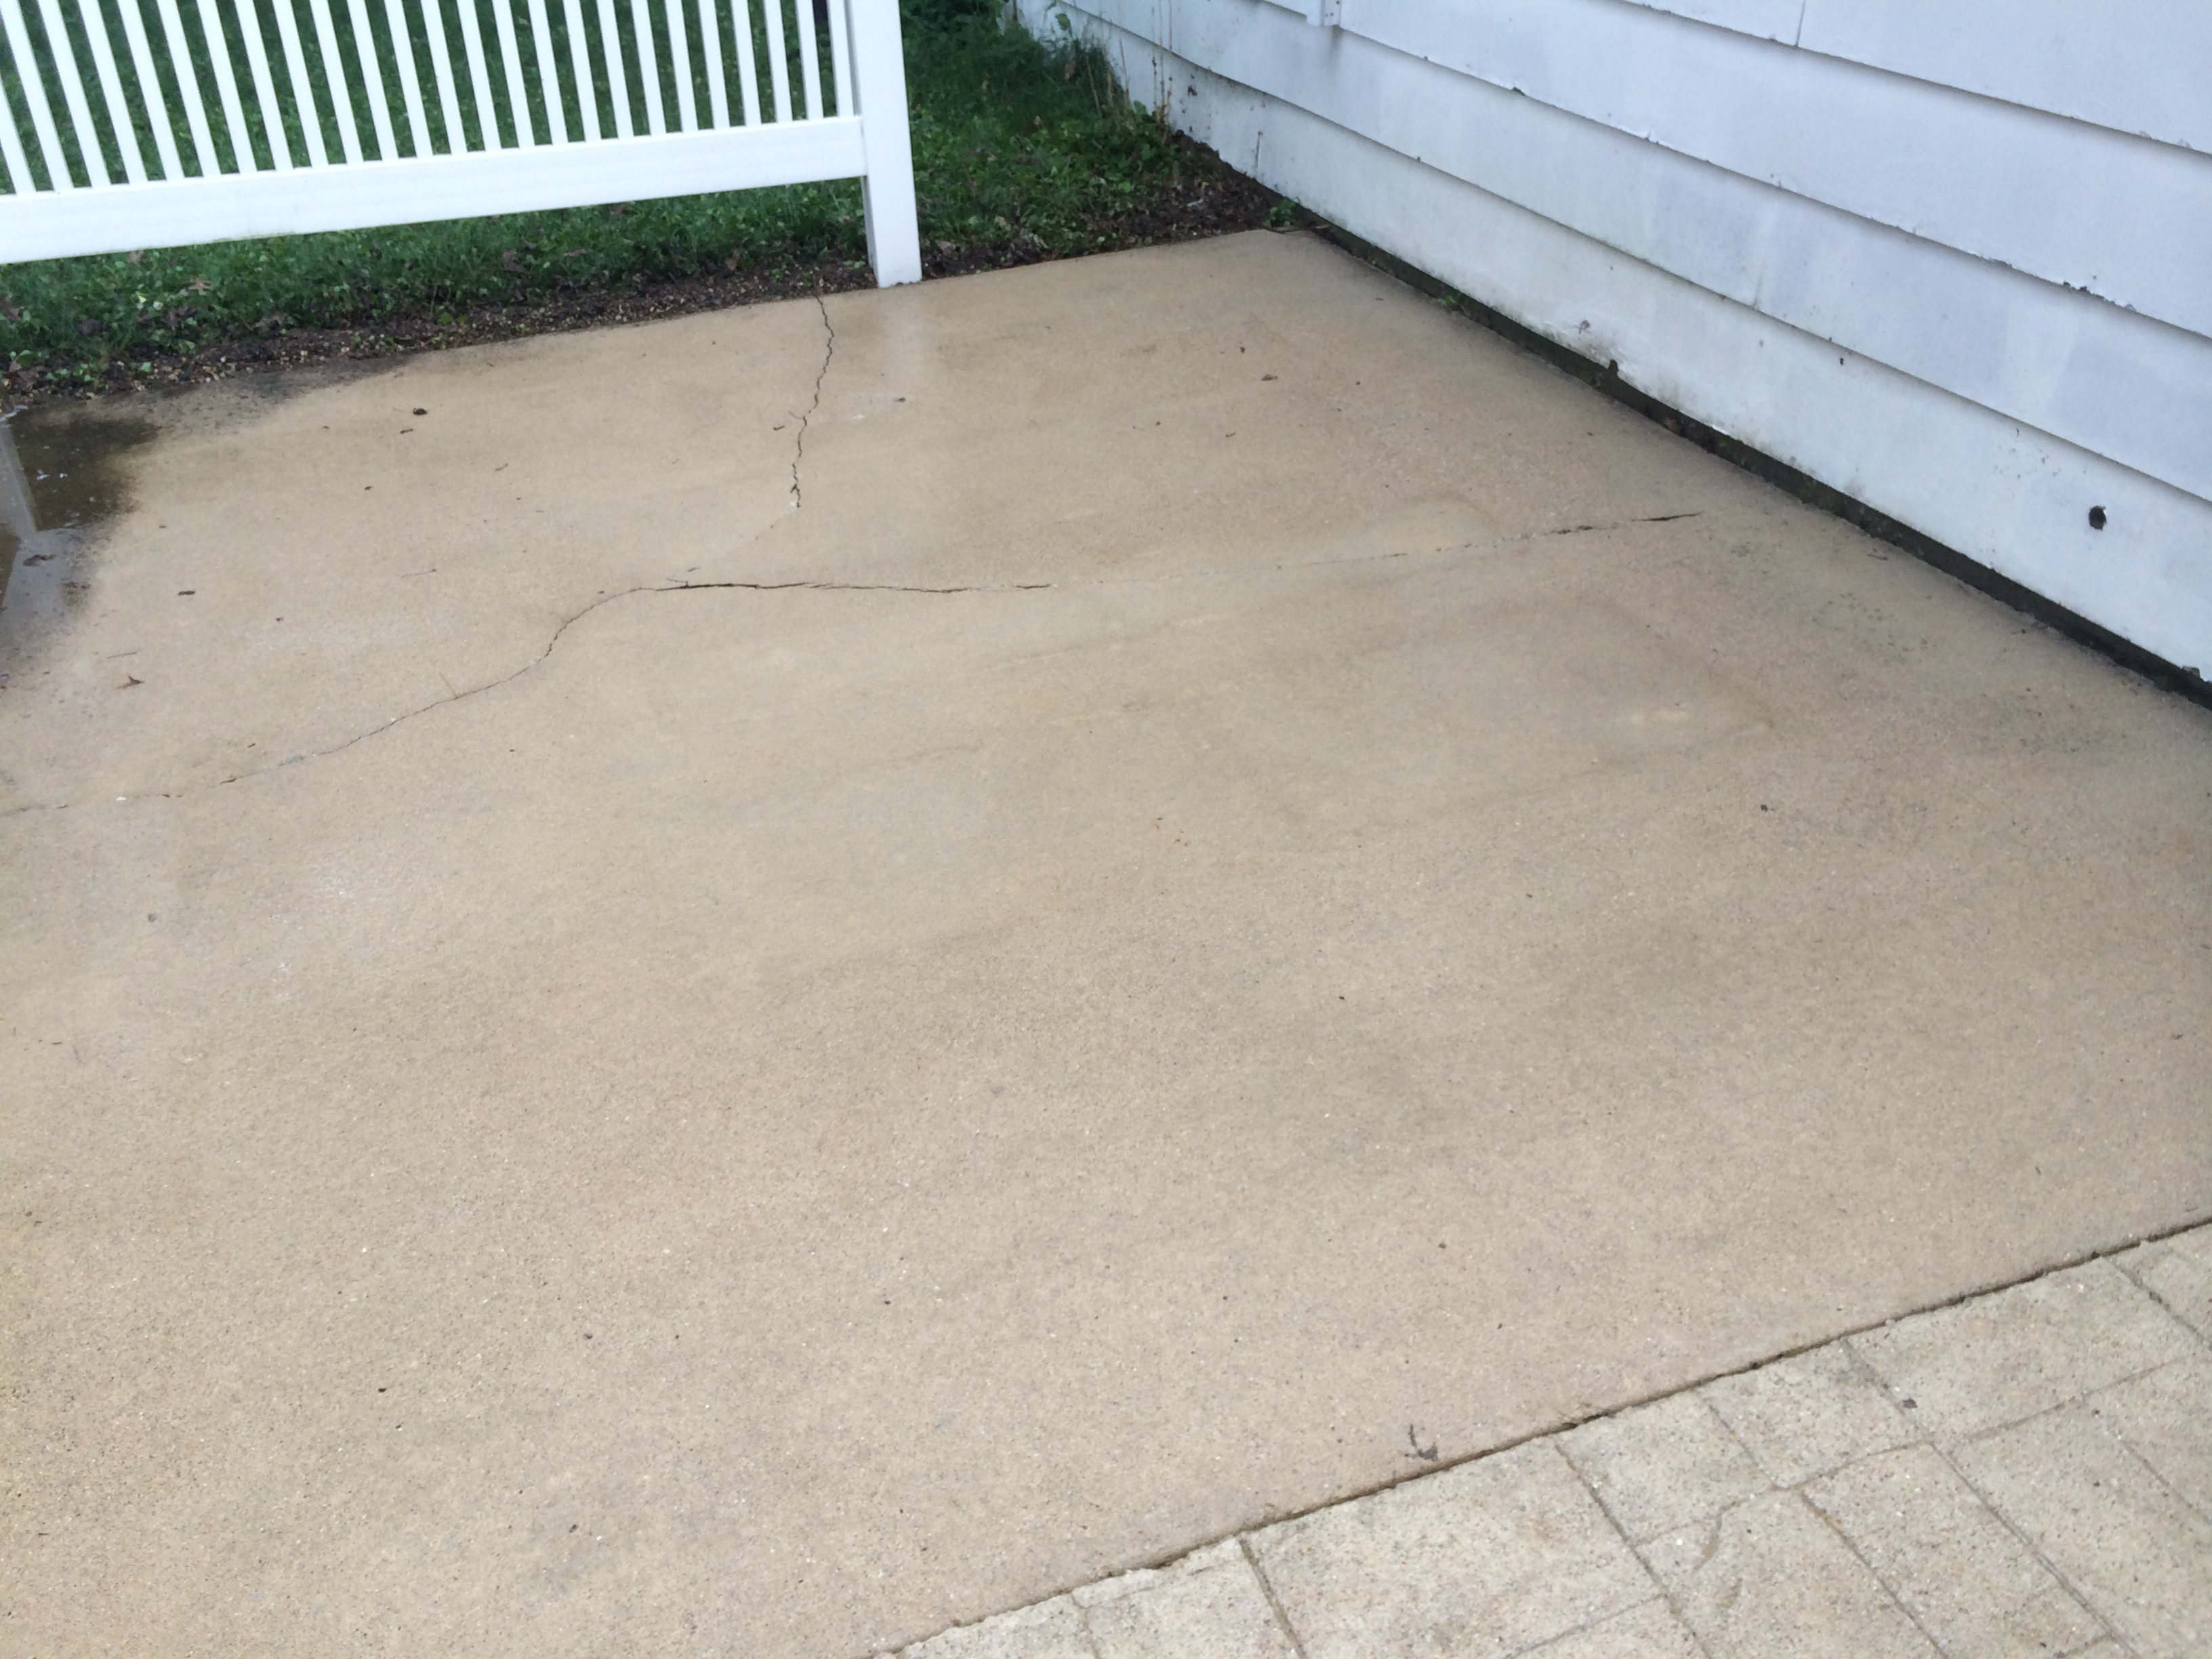 Clean concrete patio 28 images i should be mopping the for Indoor concrete cleaner